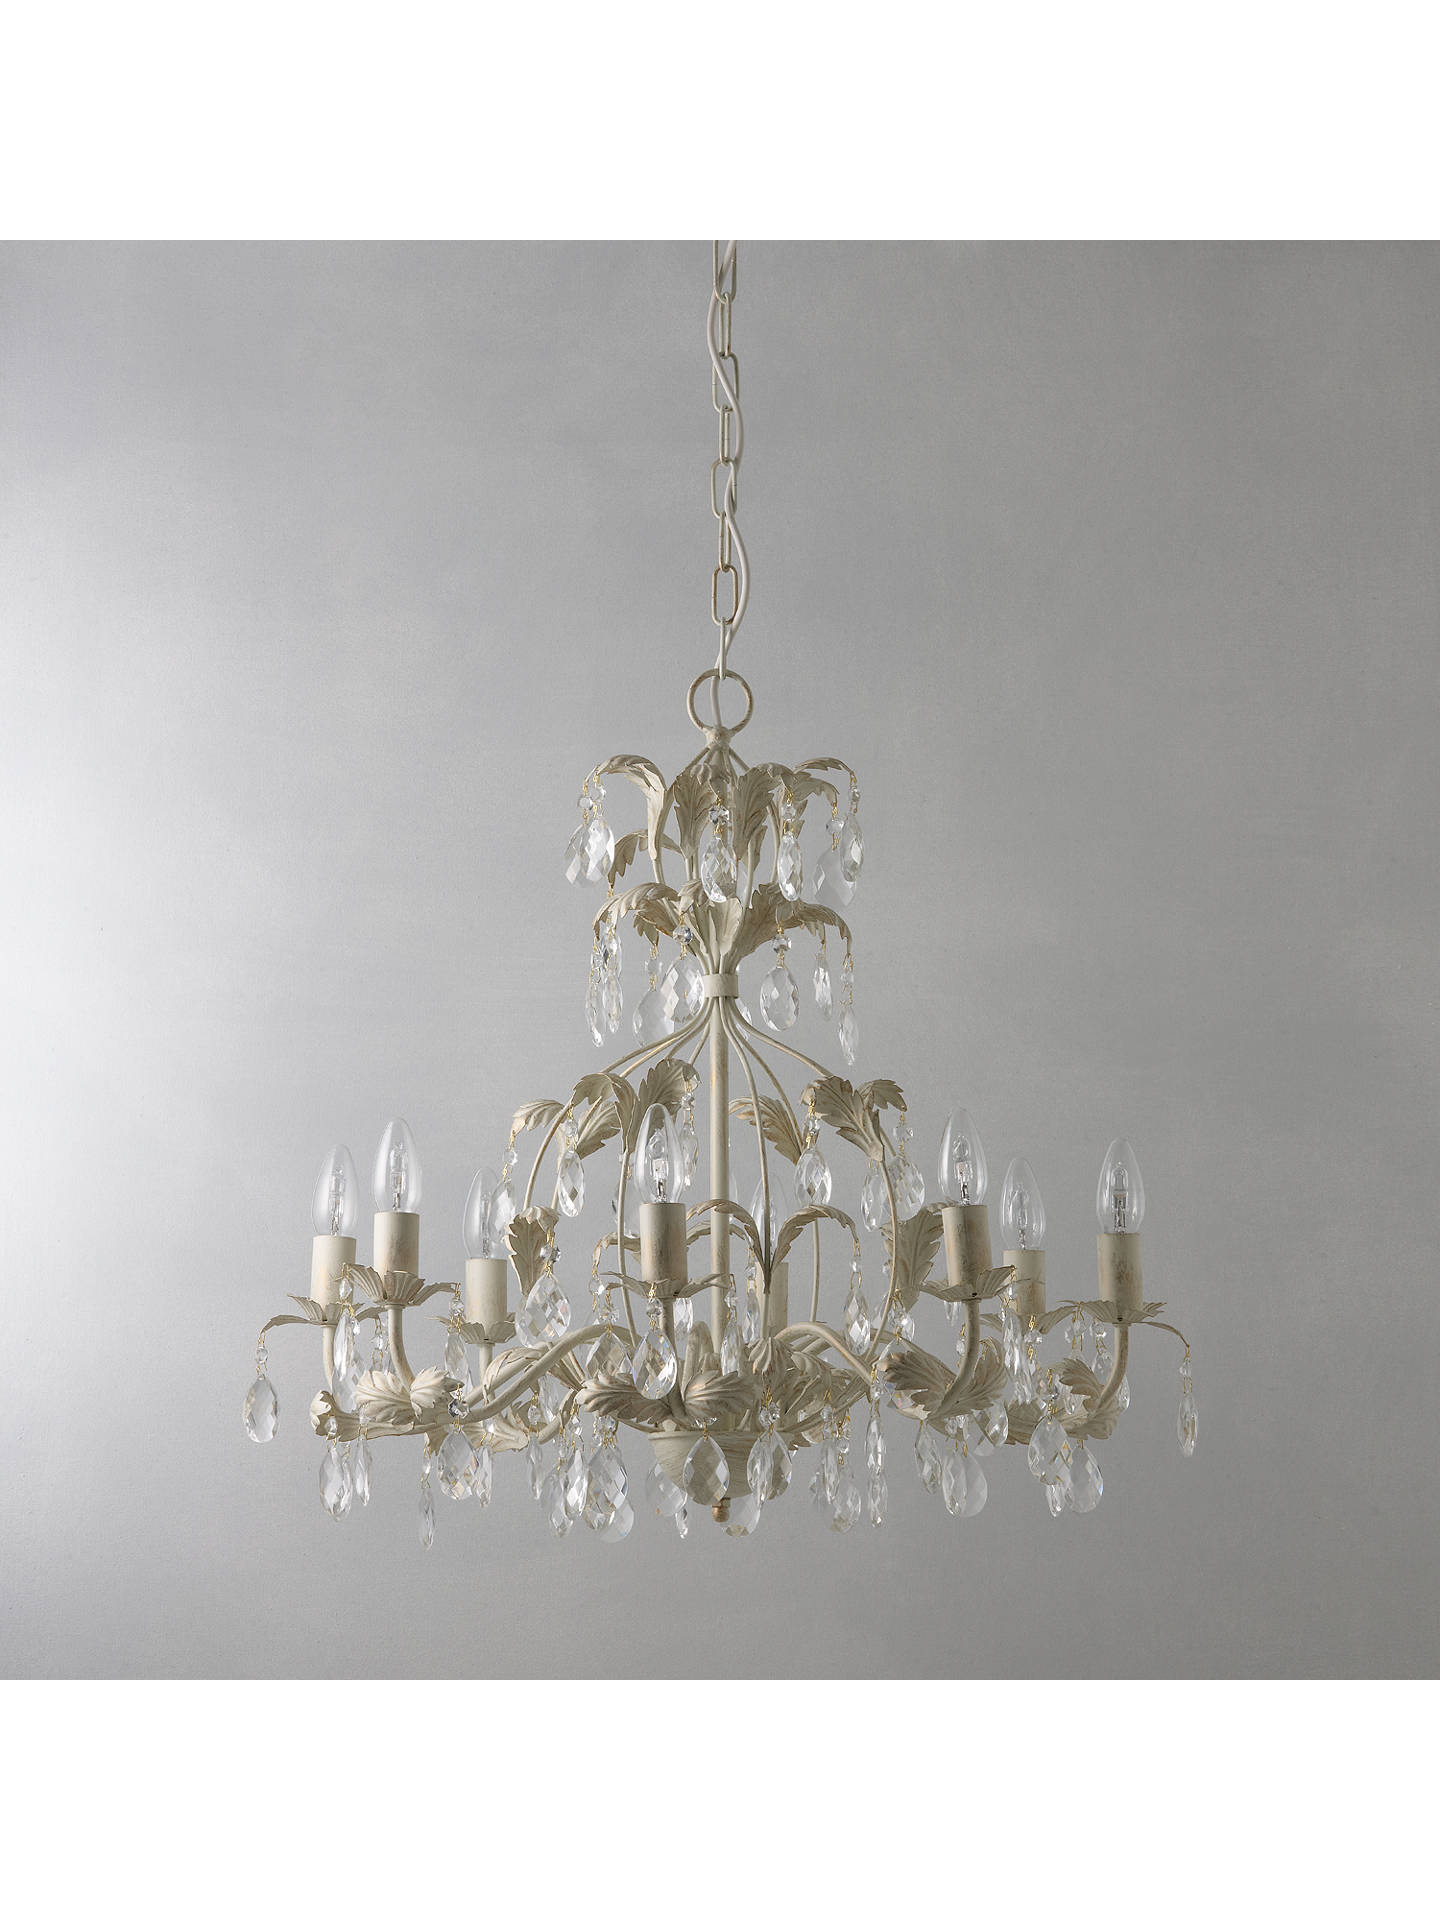 Buy John Lewis & Partners Annabella Chandelier, 8 Arm Online at johnlewis.com